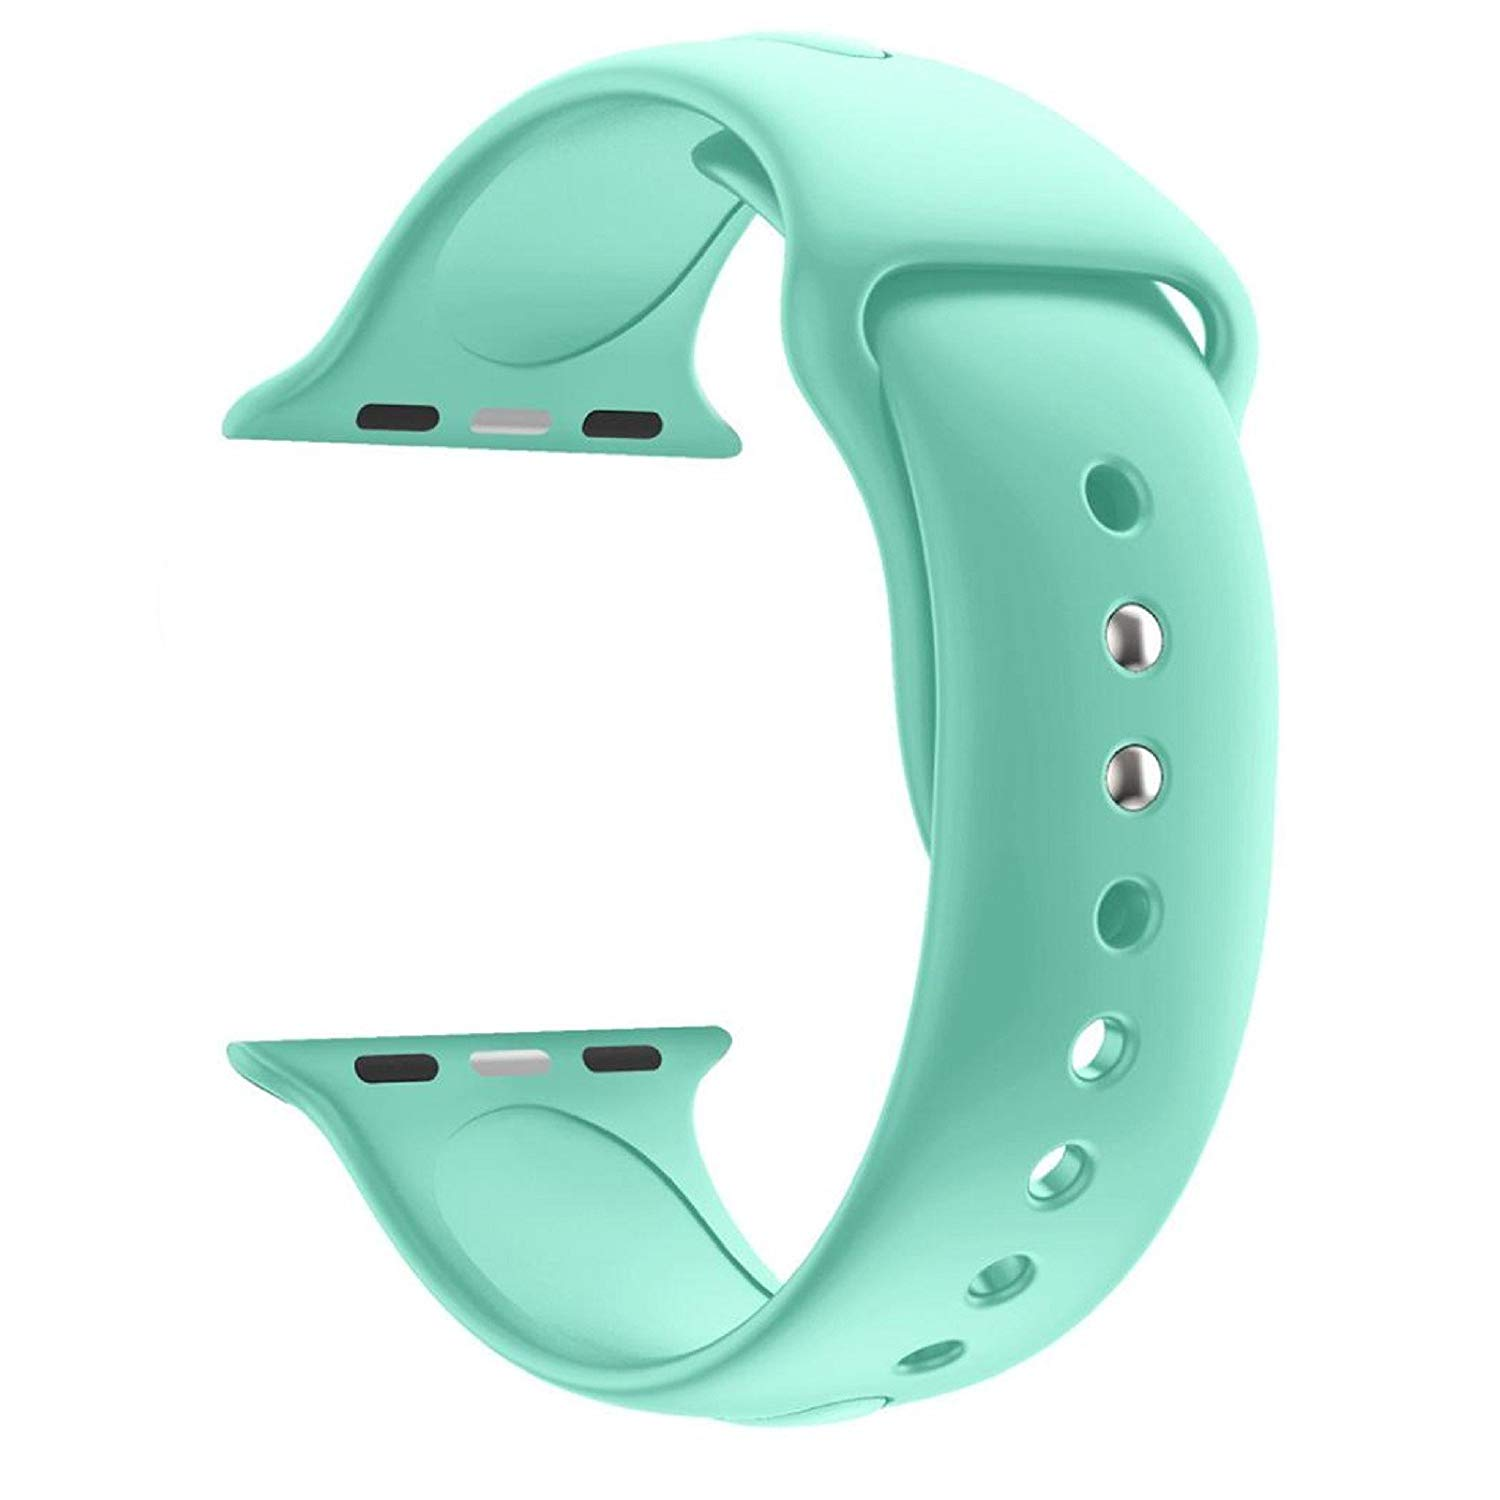 Owill Fashion Sports Soft Silicone Replacement Sports Band Wrist Strap For Apple Watch Series 3 38MM, Wrist Circumference: 140MM-185MM (Mint Green)